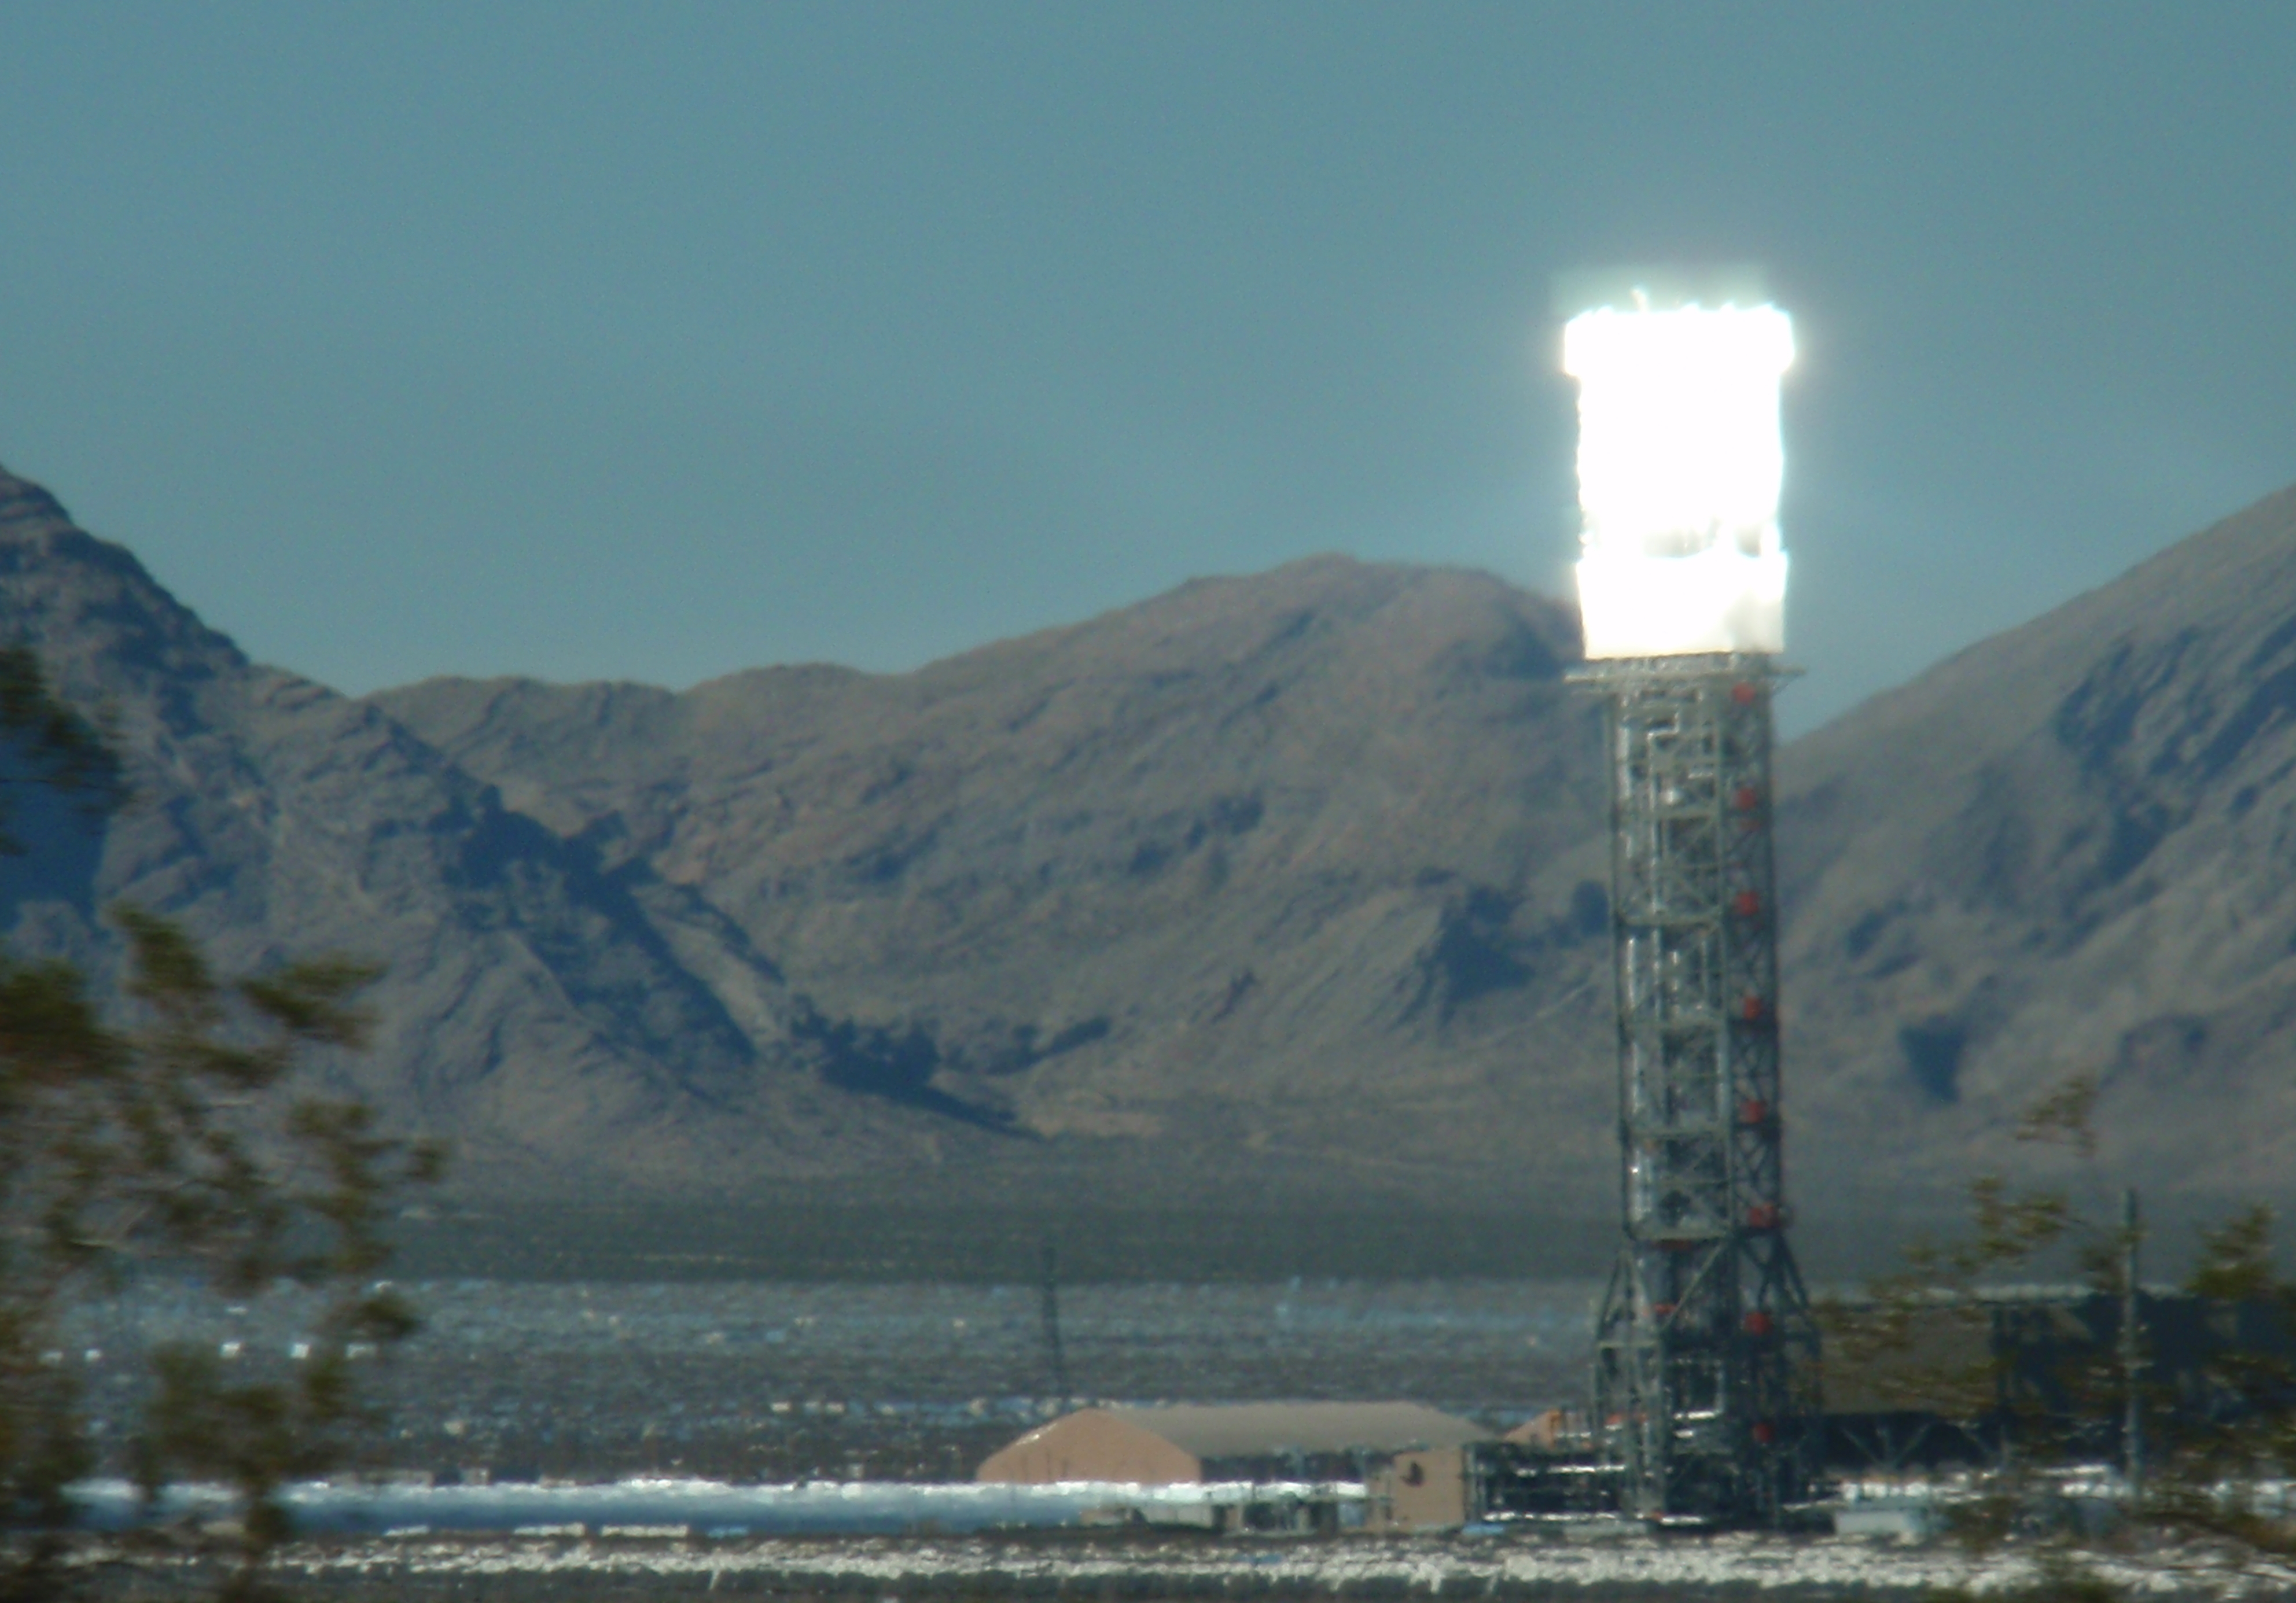 Ivanpah facility toasted itself instead of birds on Thursday. Photo by James Ulvog.